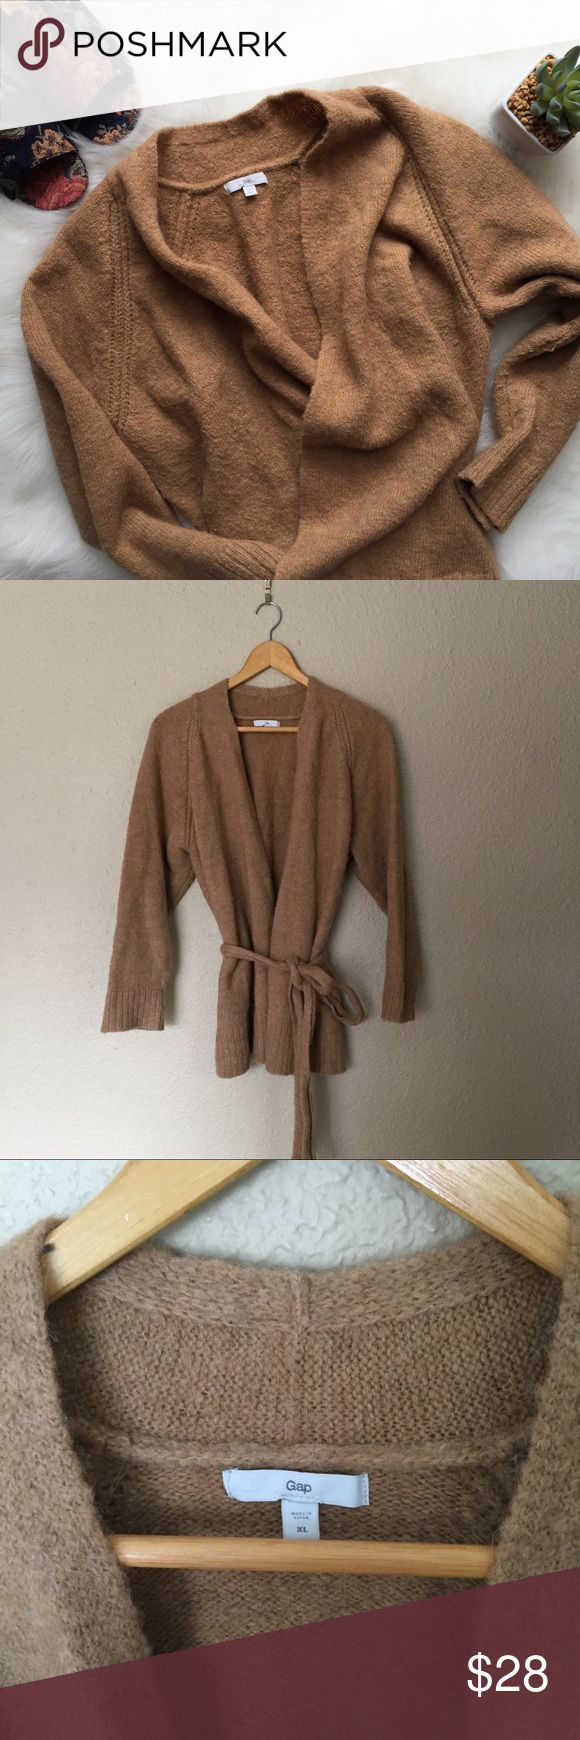 Tan Sweater Wrap Cozy Brown Cardigan | GAP Camel Tie Cardigan Wrap. Ties at waist. Good used condition-- notice condition in photos. Flat lay measures as follows. Chest  20 inches when closed tied up. Side seam 17 inches. Bundle & save! Offers always welcome.  (A3) GAP Sweaters Cardigans